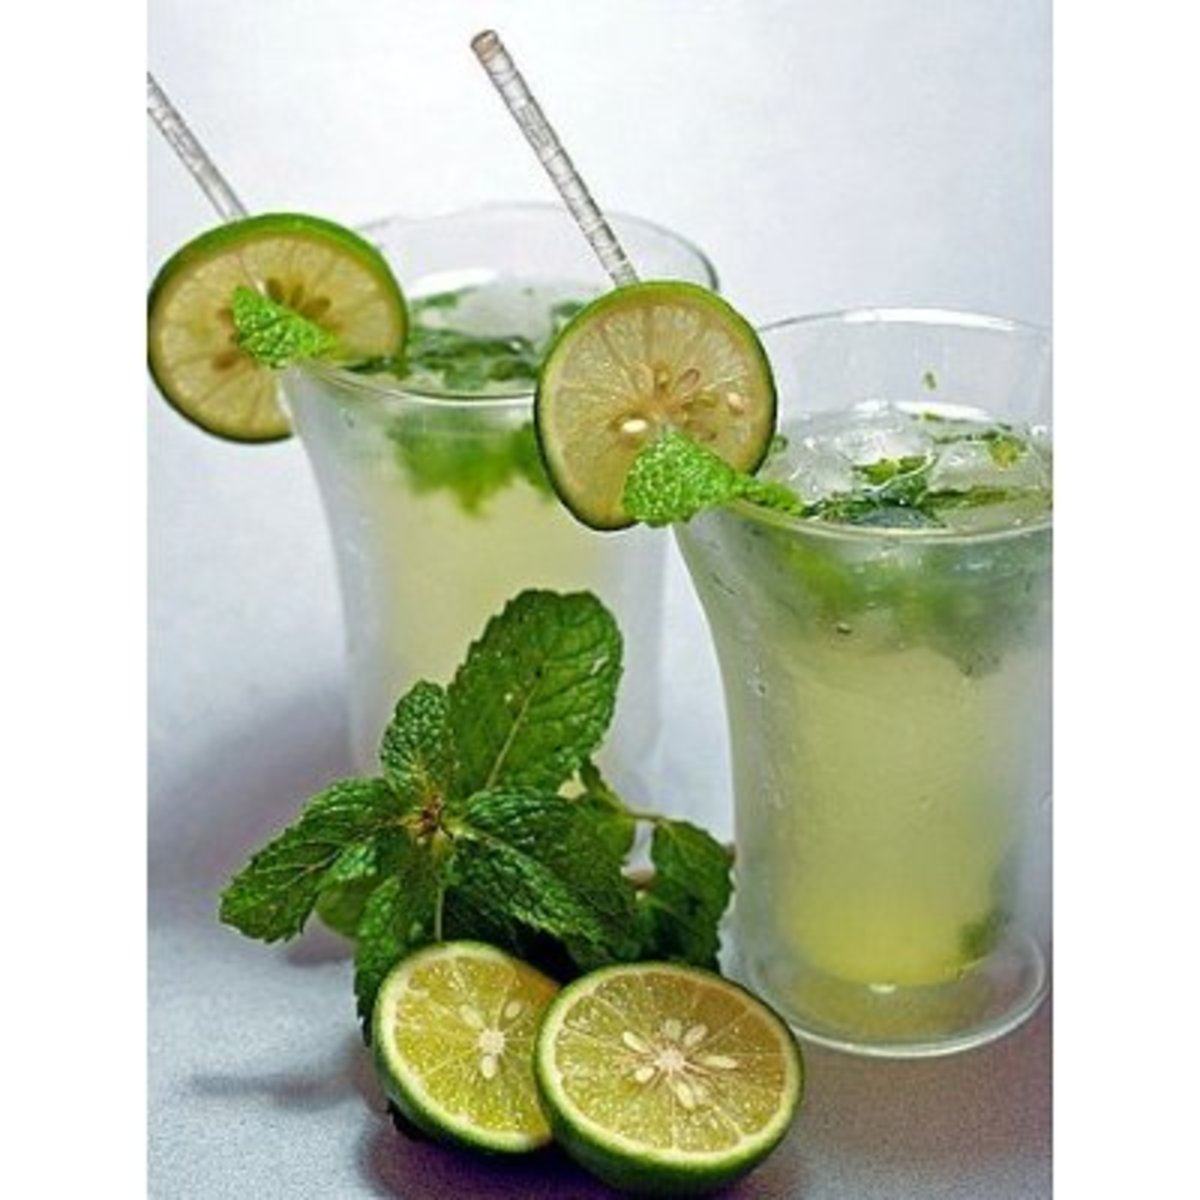 Mint served in drinks, cooling and refreshing in the summer.